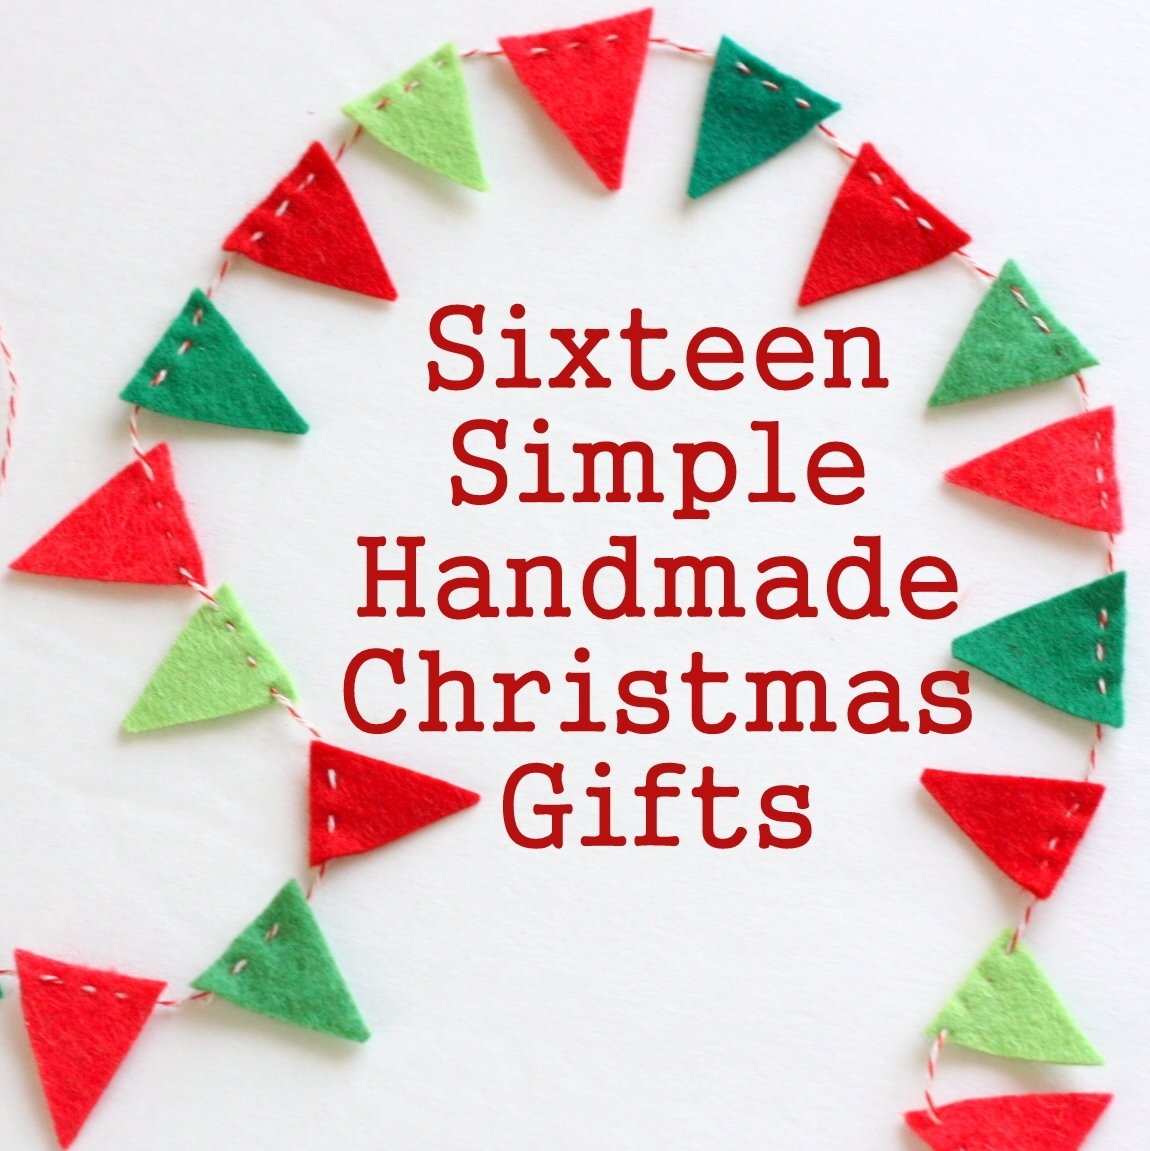 10 Fantastic Ideas For Christmas Gifts To Make 16 simple handmade christmas gift tutorials diary of a quilter a 1 2021